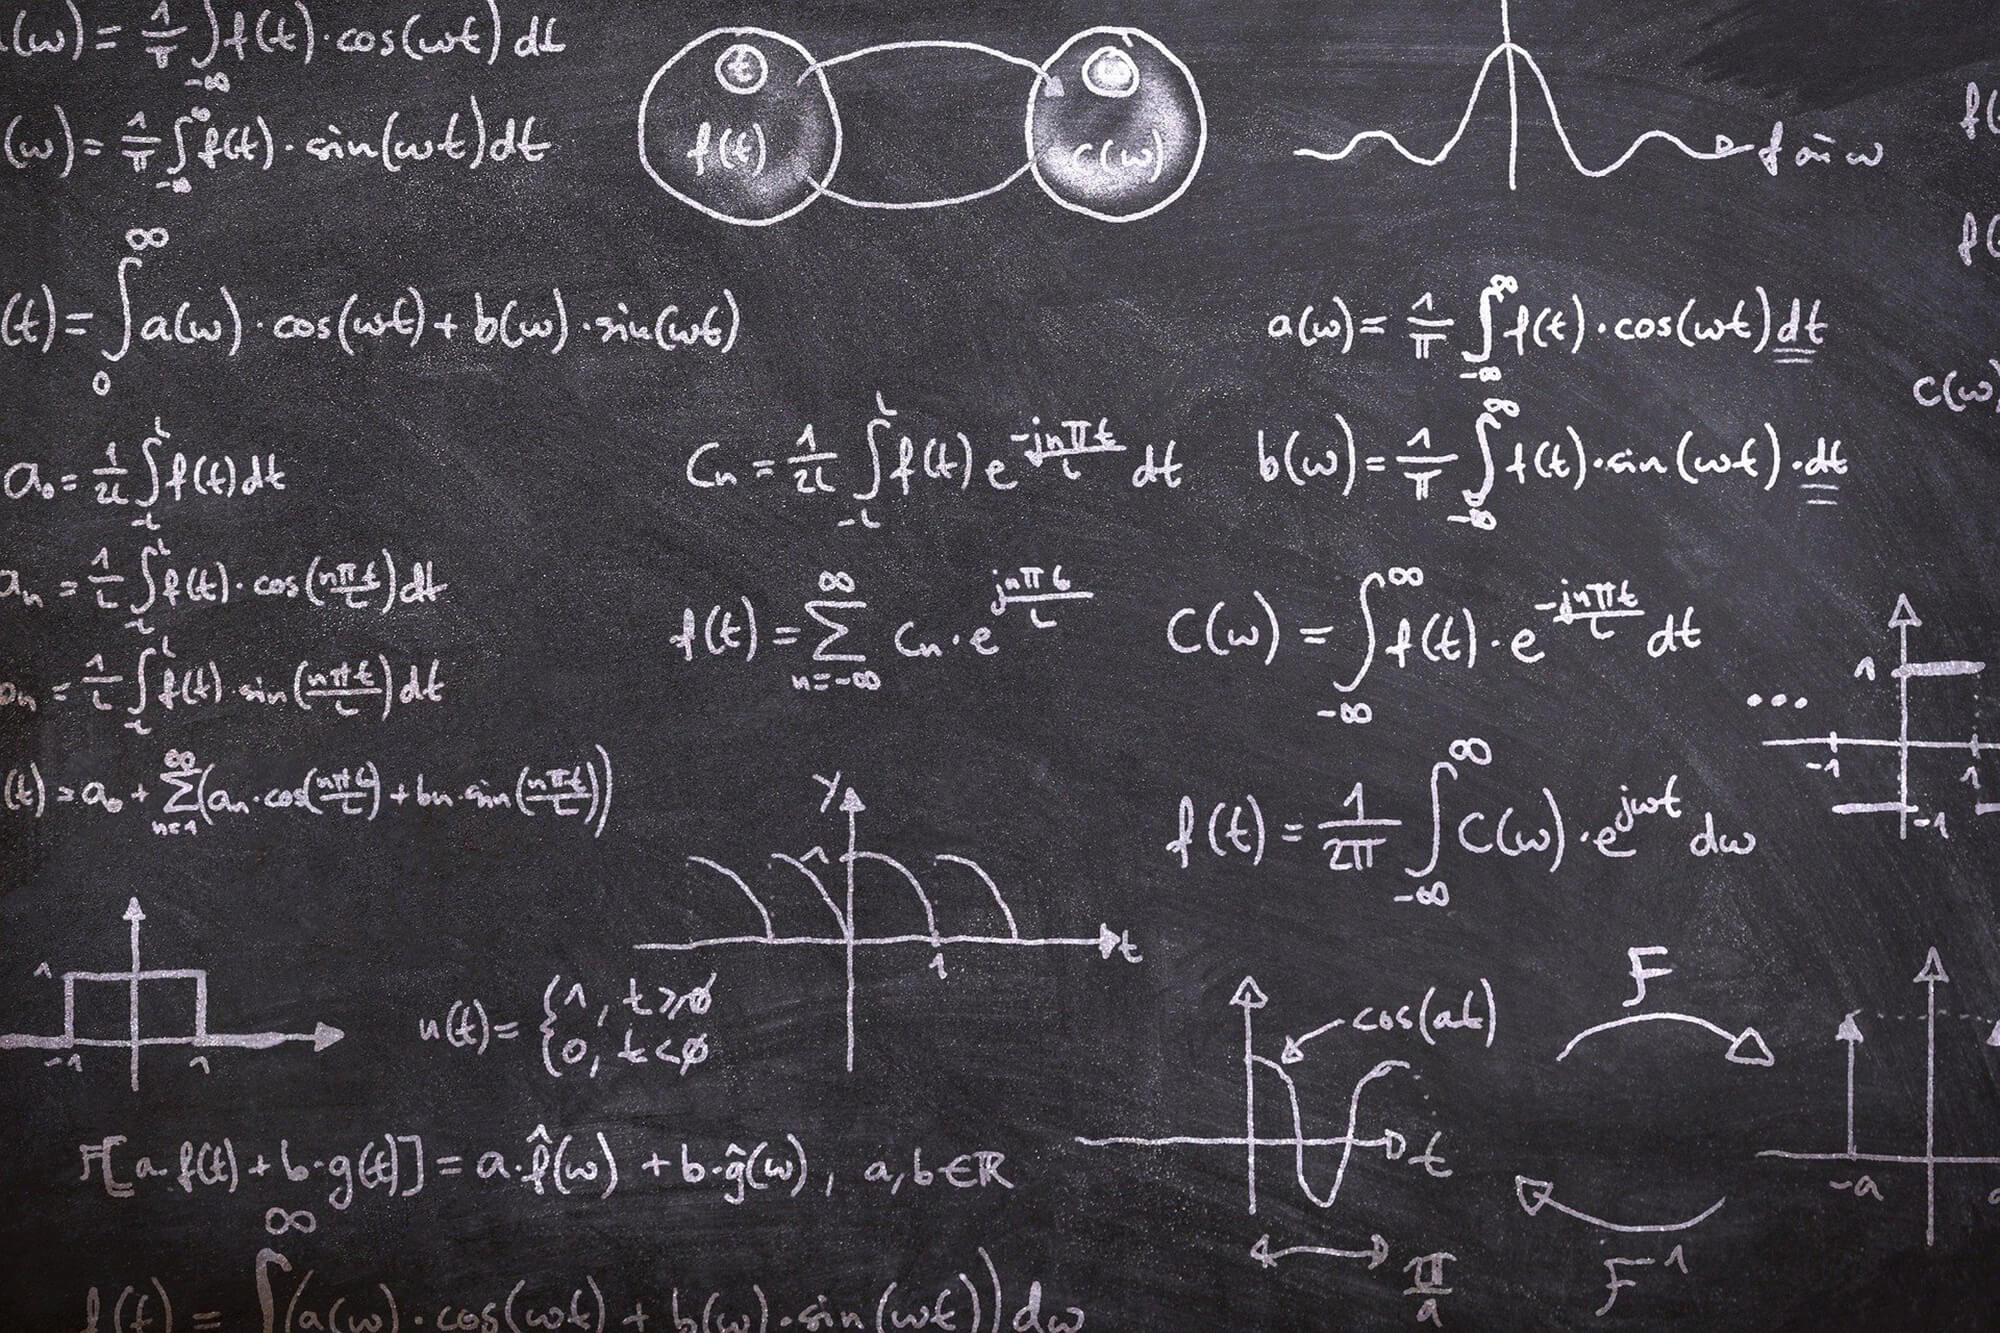 A blackboard with mathematics equations written on it